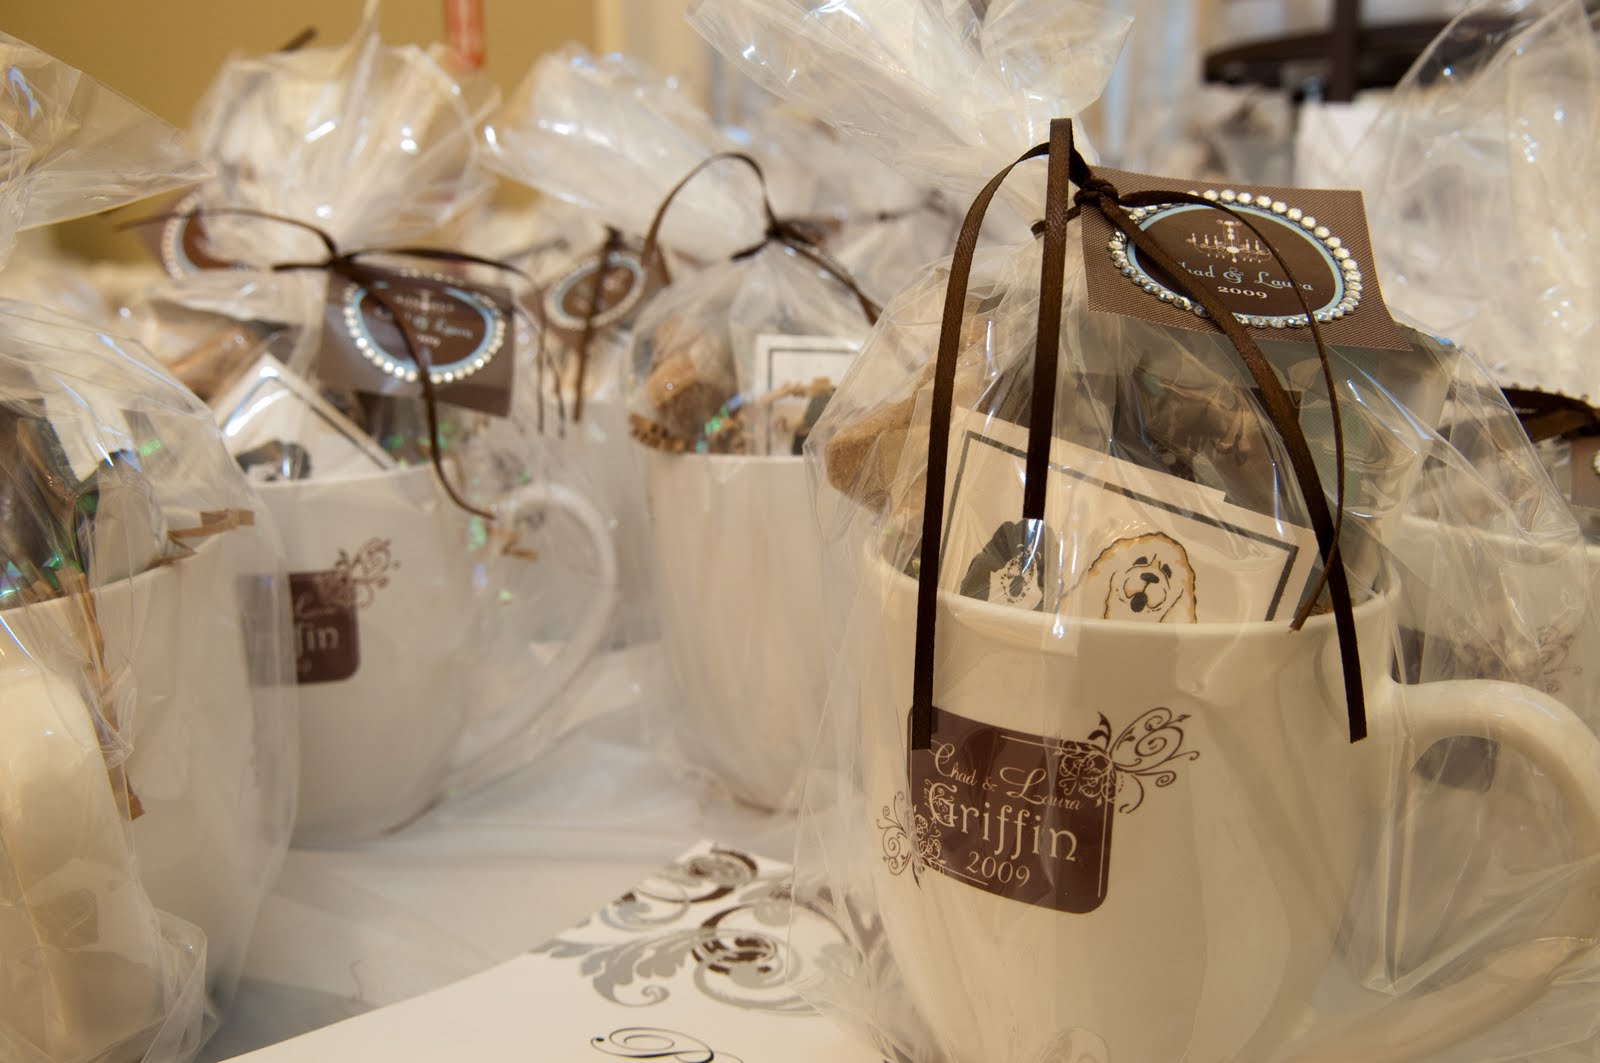 Wedding Favors Ideas For Guests : Pics Photos - Unique Wedding Guest Favors Cultural Wedding Ideas Full